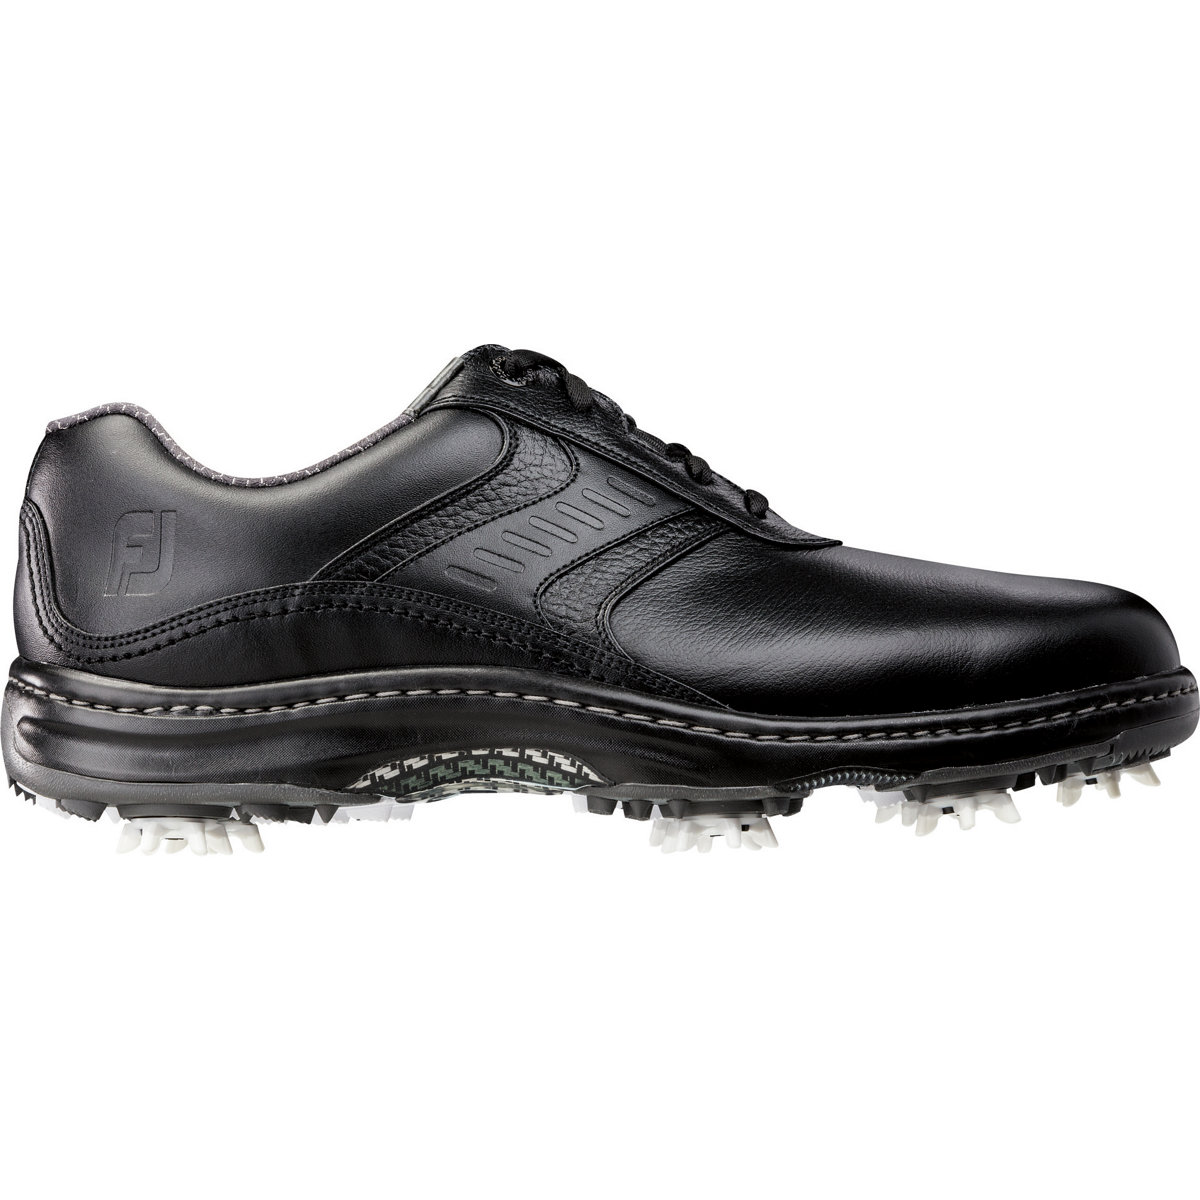 Footjoy Leather Golf Shoes